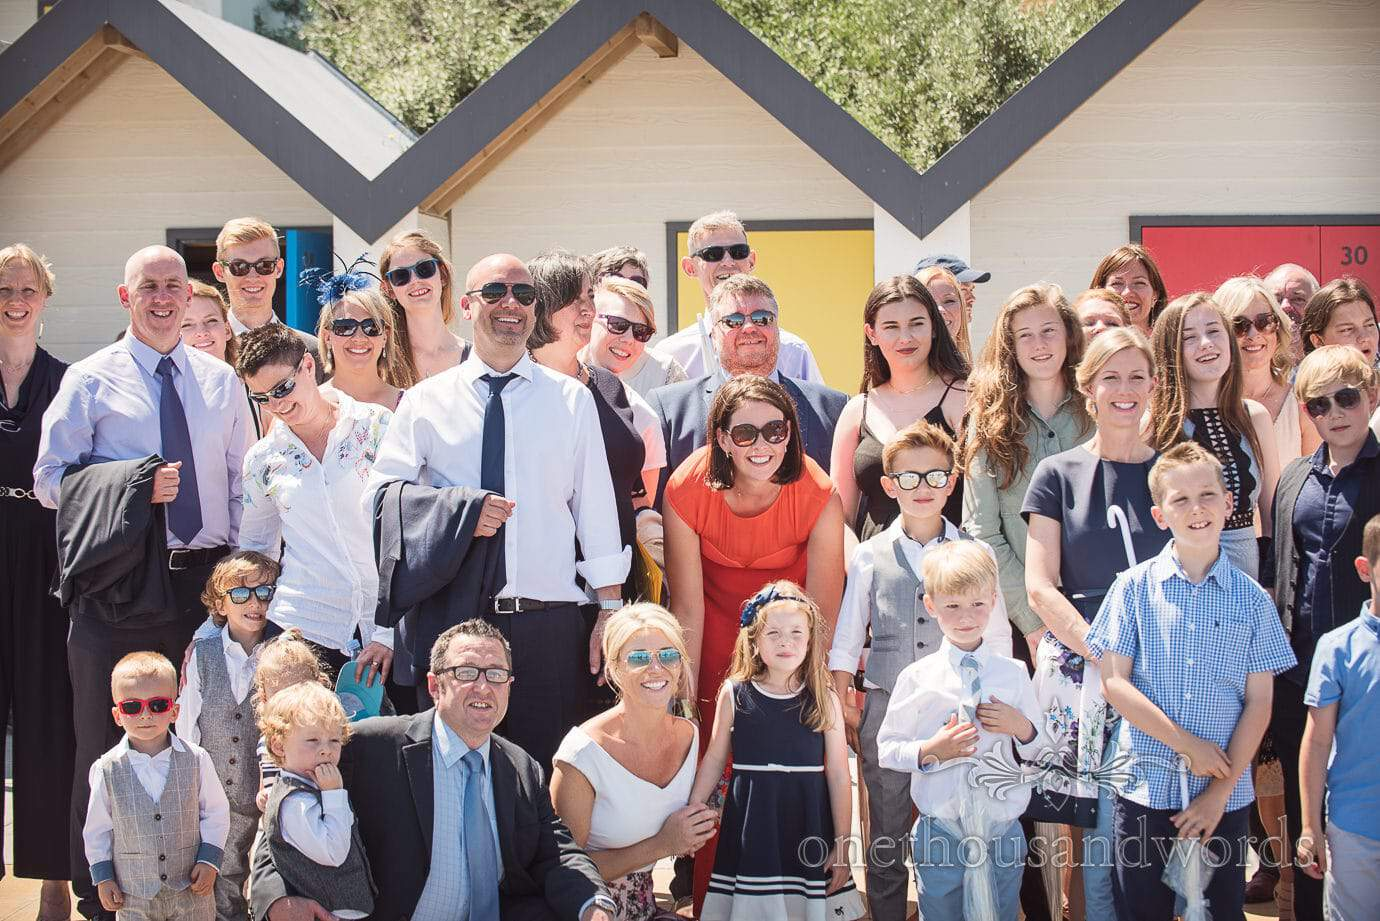 Swanage Wedding Photographers group photograph close up in front of Swanage beach huts